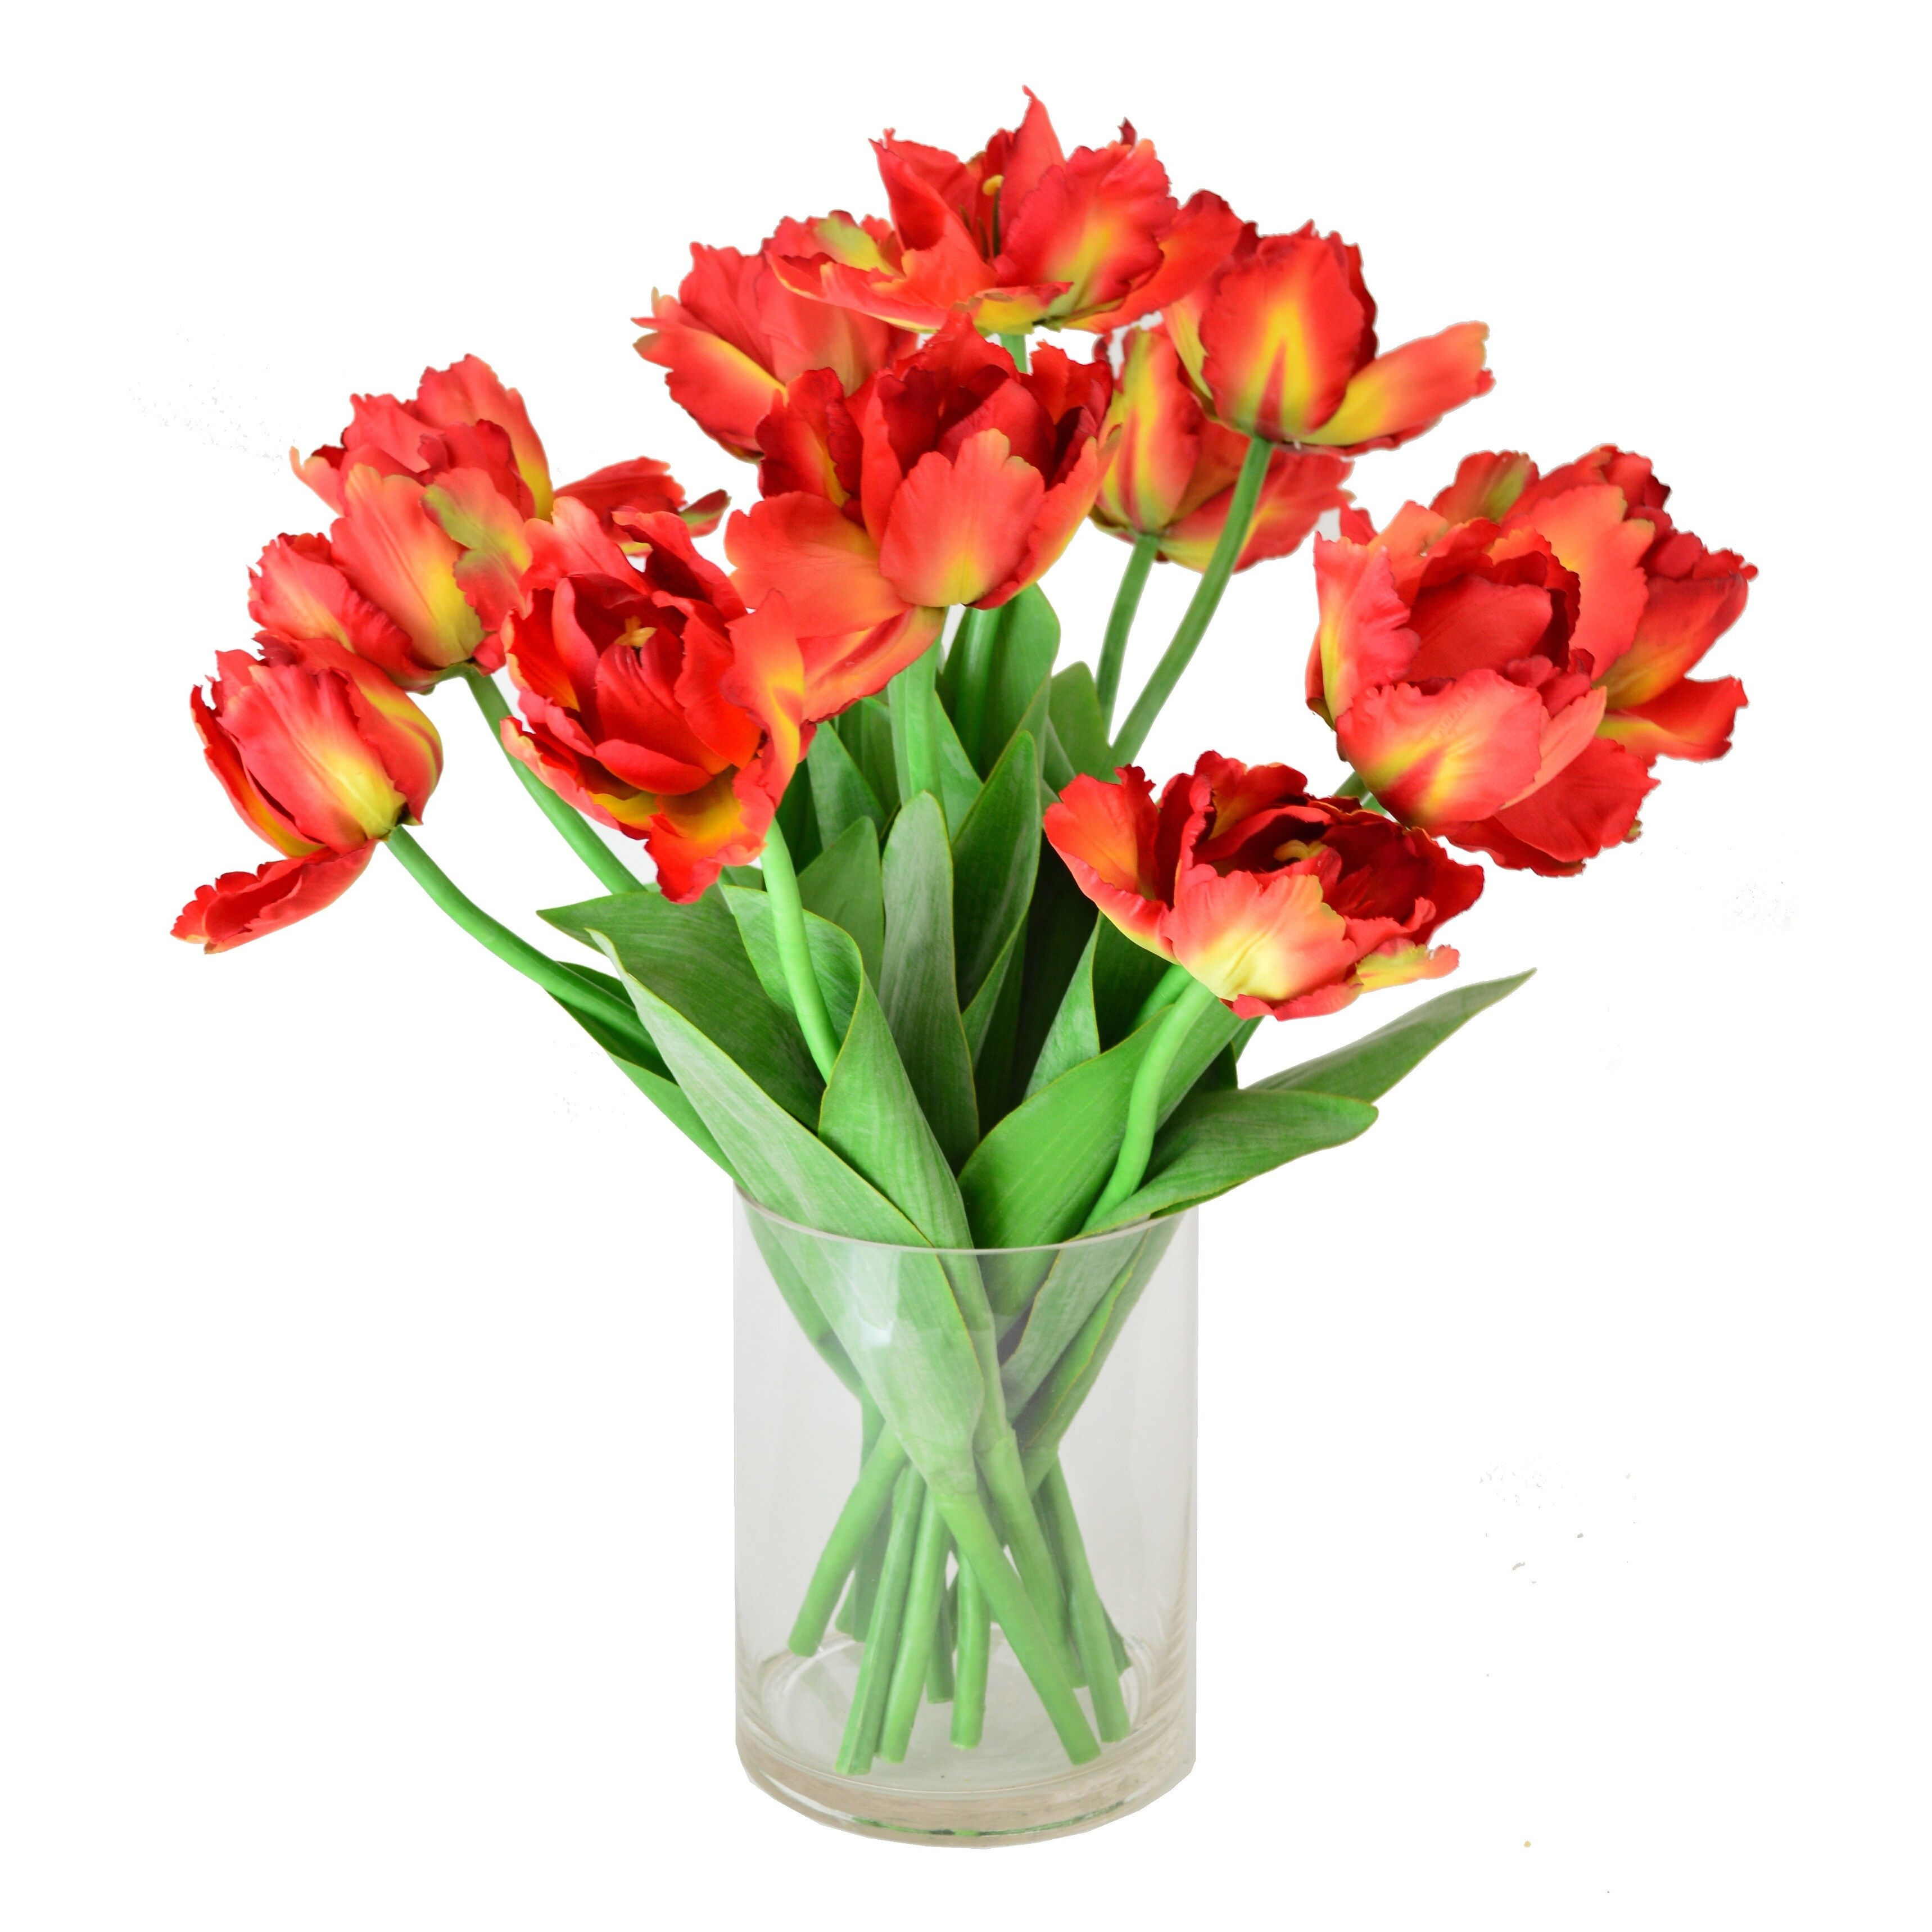 Creative Displays Parrot Tulip Faux Floral in Glass Vase ...